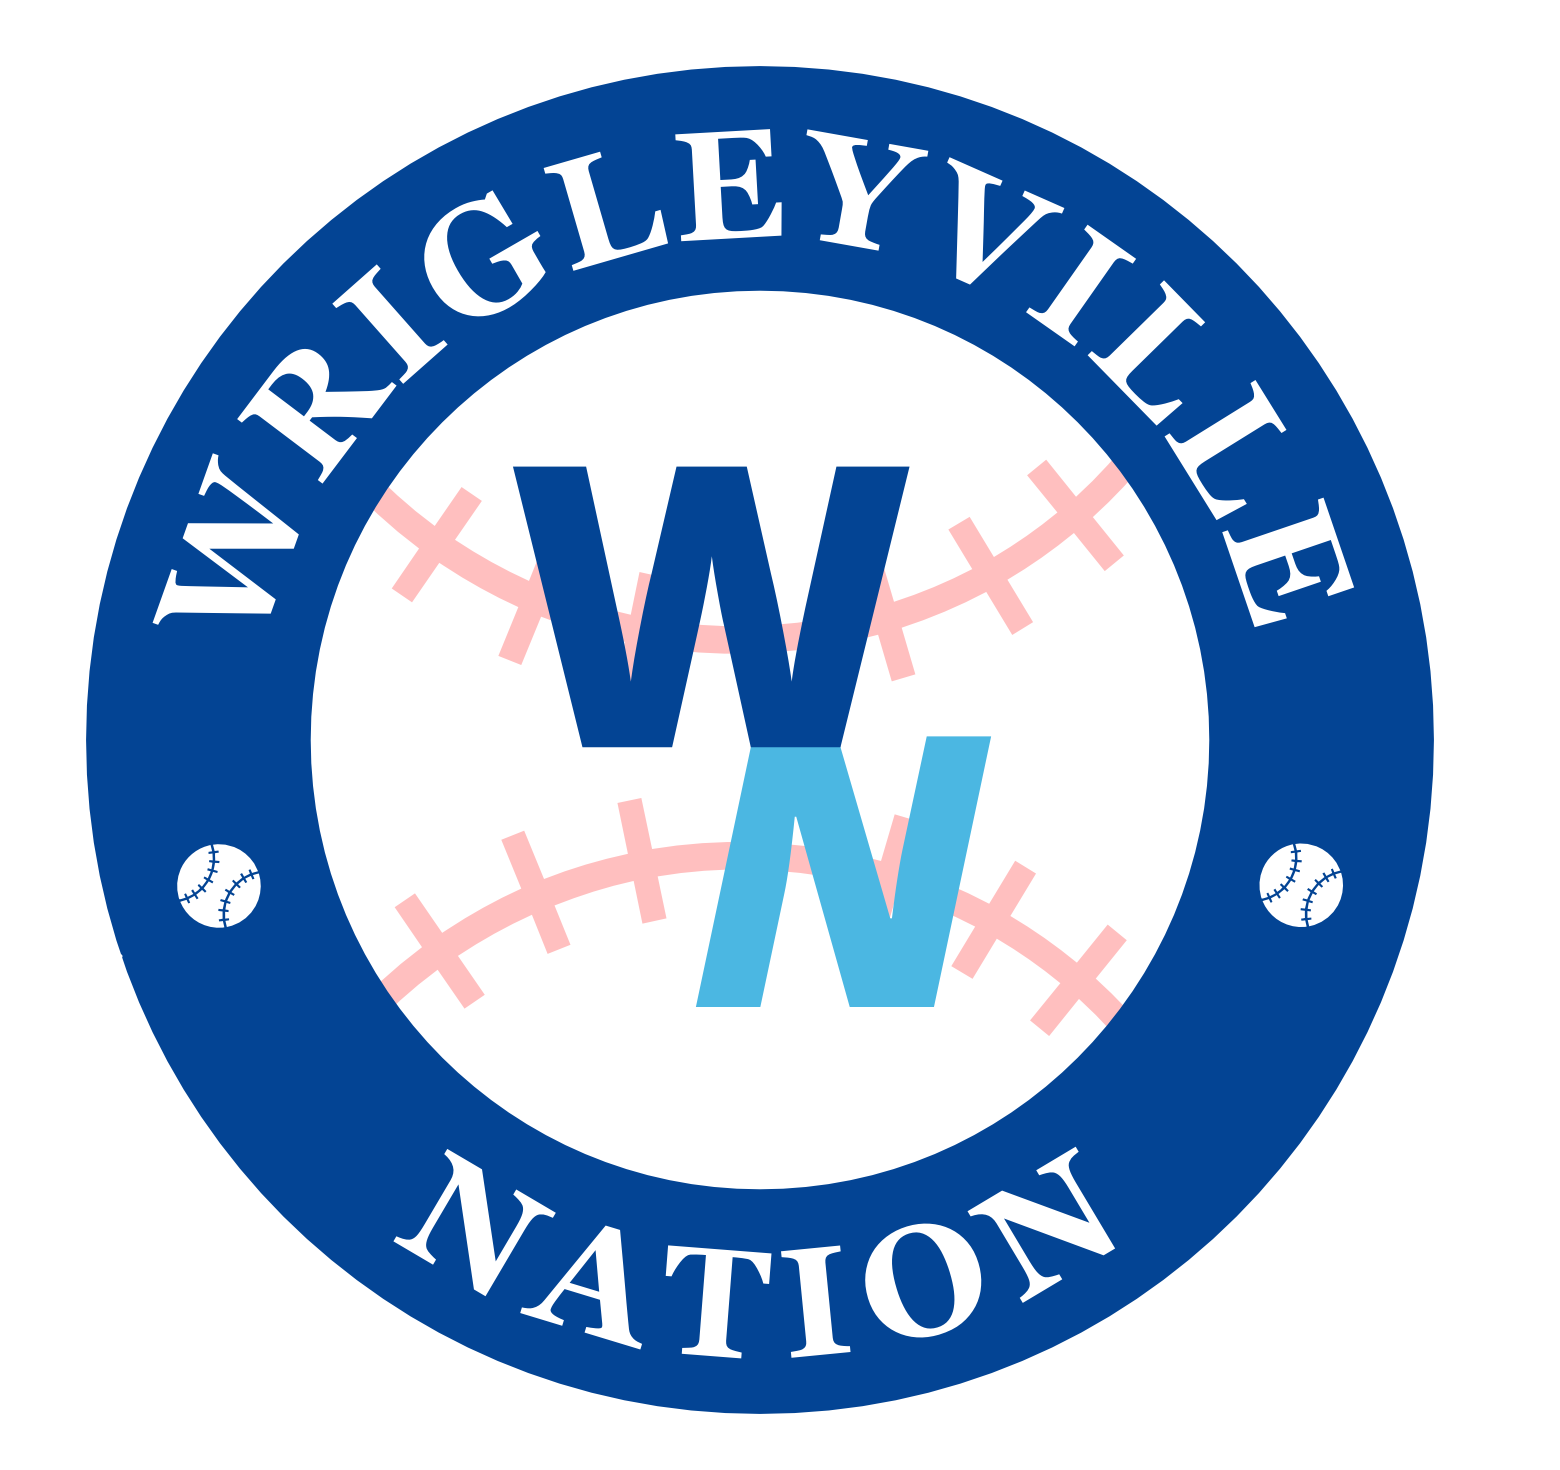 Wrigleyville Nation Ep 268 - Hosts Only, Cubs Final Homestand, Standings Update, & More show art